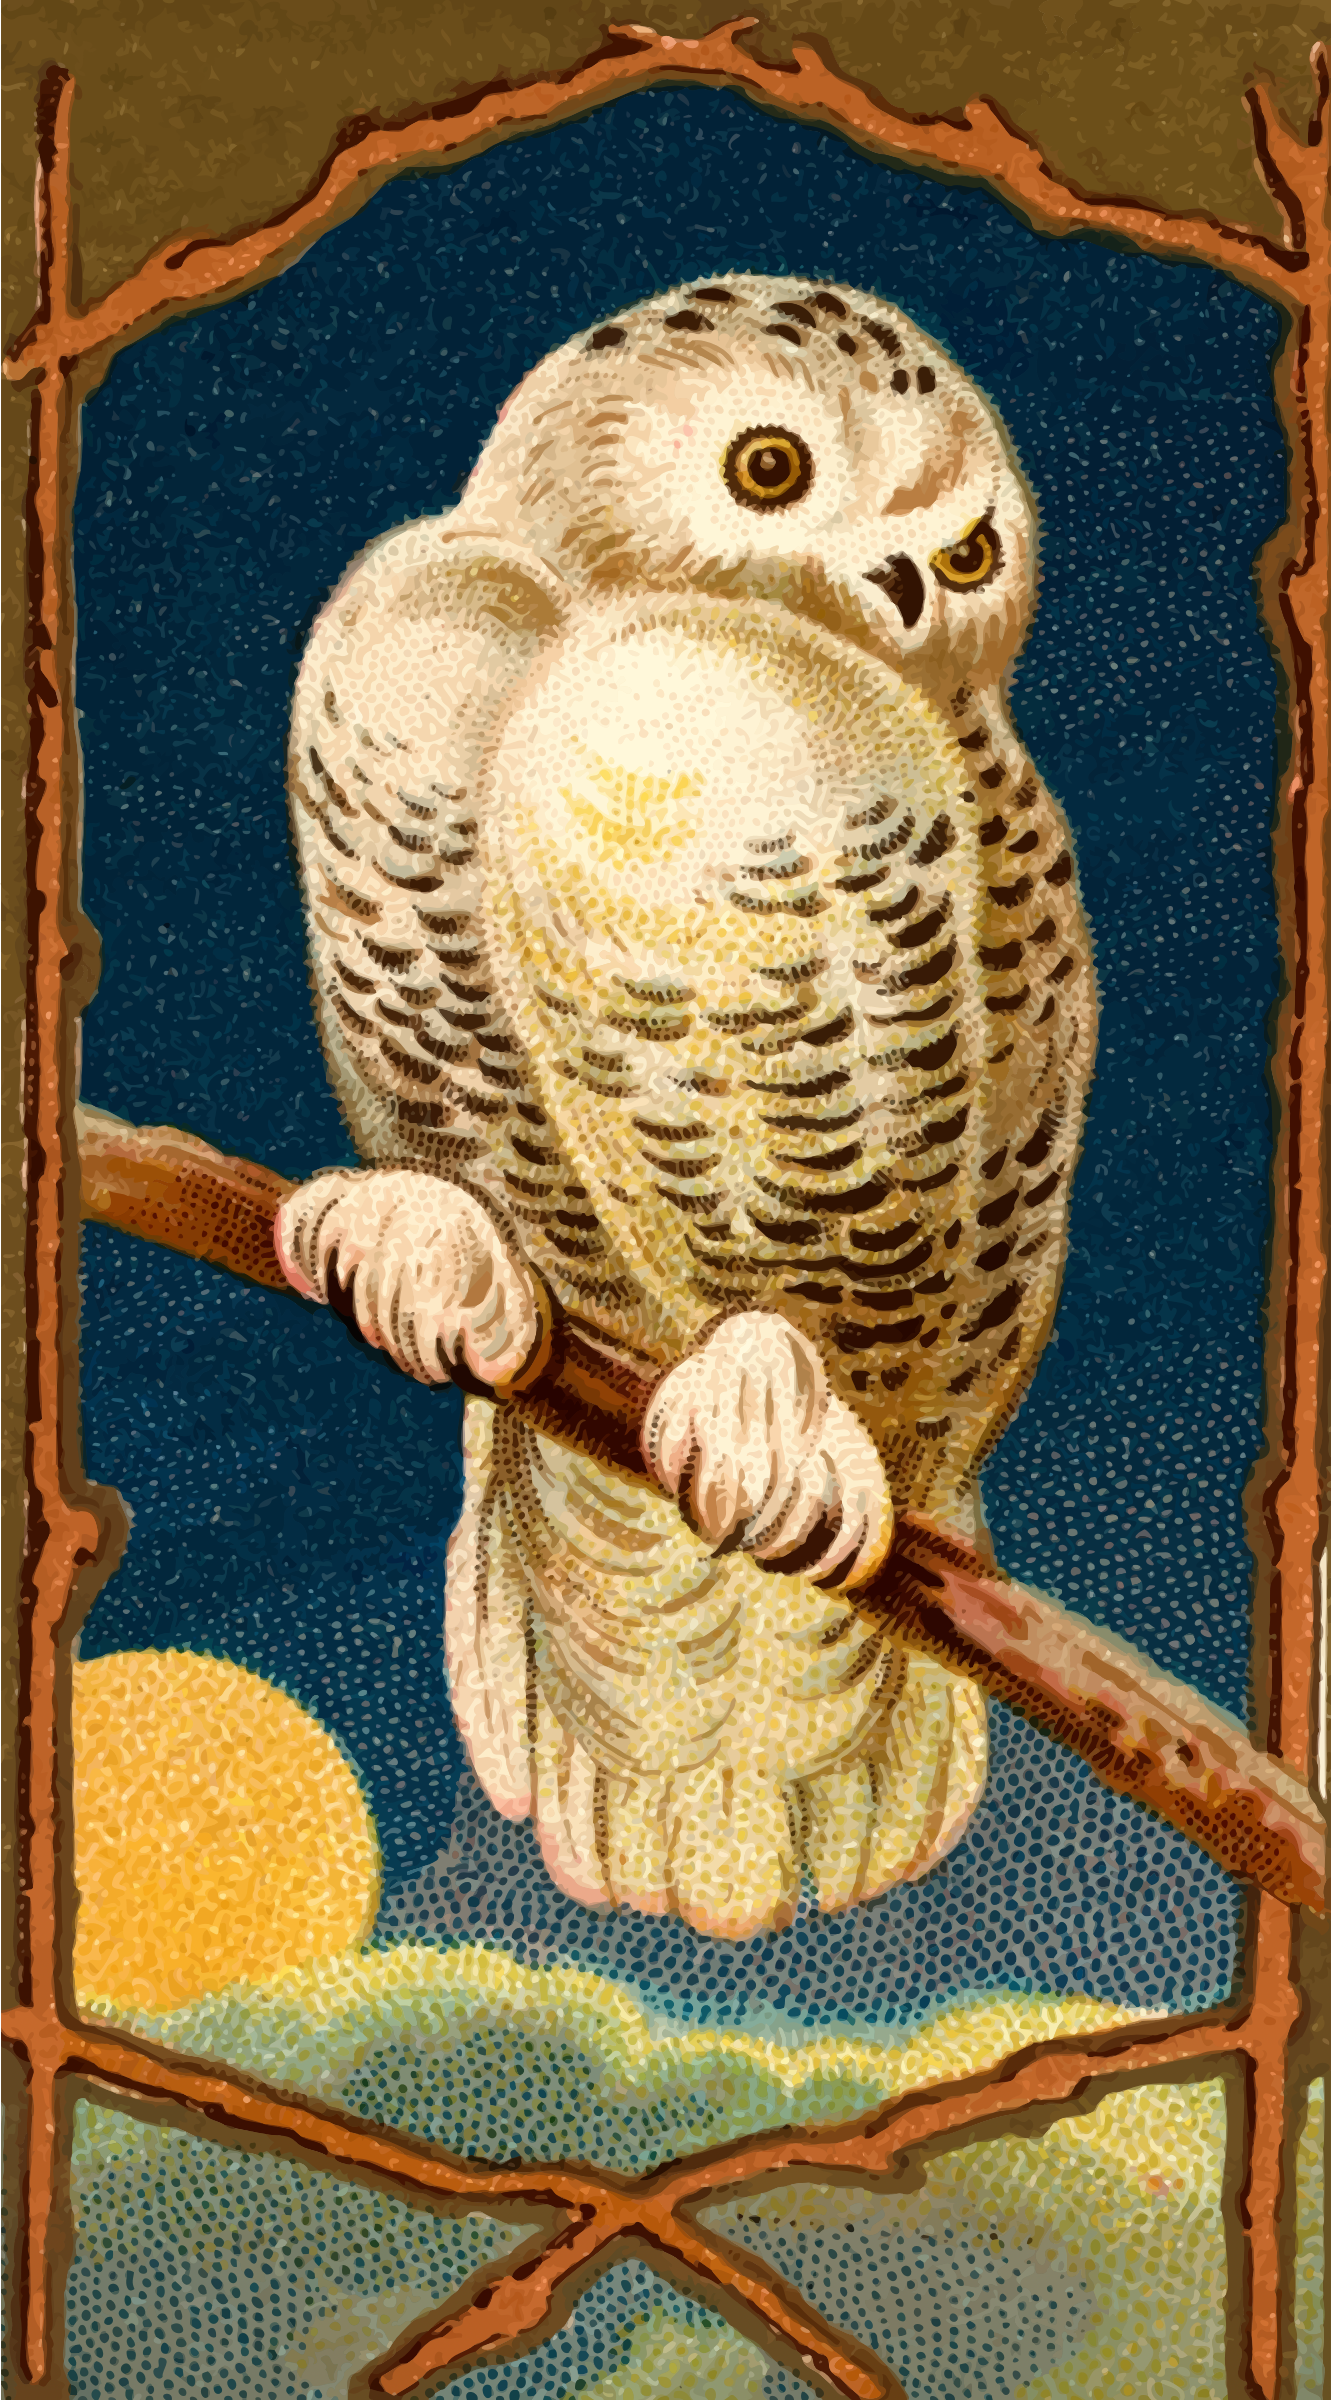 Cigarette card - Snowy Owl by Firkin